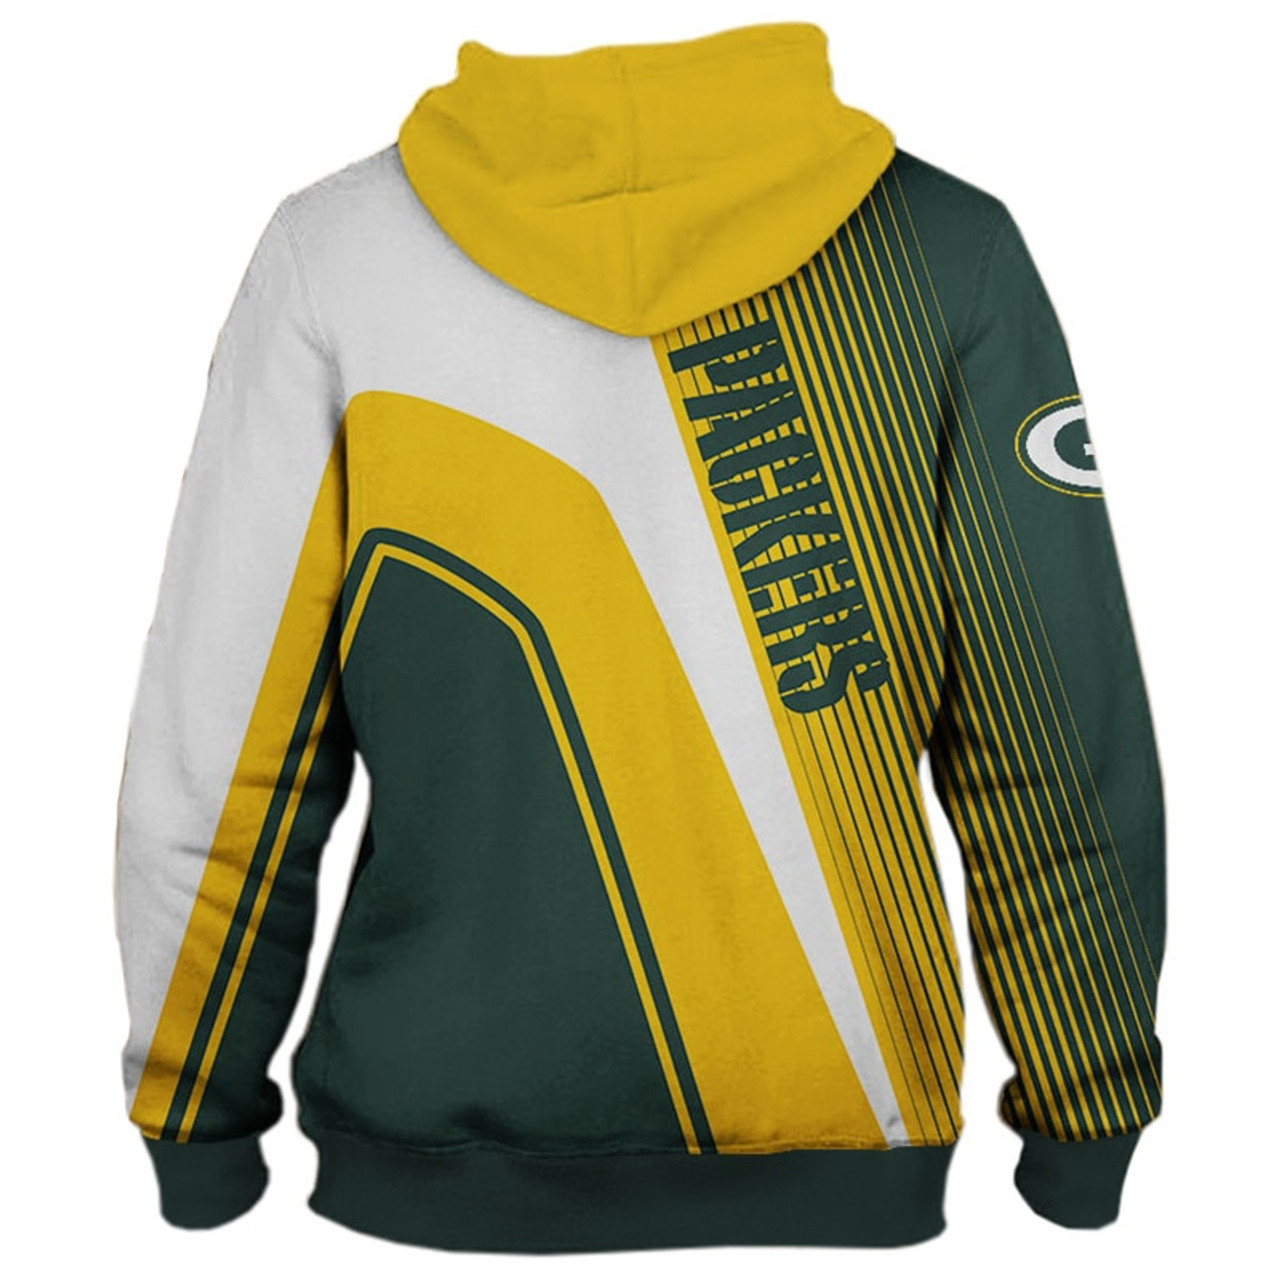 **(OFFICIAL-N.F.L.GREEN-BAY-PACKERS-TRENDY-TEAM-ZIPPERED-HOODIES/CUSTOM-3D-PACKERS-OFFICIAL-LOGOS & OFFICIAL-CLASSIC-PACKERS-TEAM-COLORS/DETAILED-3D-GRAPHIC-PRINTED-DOUBLE-SIDED/ALL-OVER-GRAPHIC-PRINTED-DESIGNED/PREMIUM-N.F.L.PACKERS-TEAM-HOODIES)**